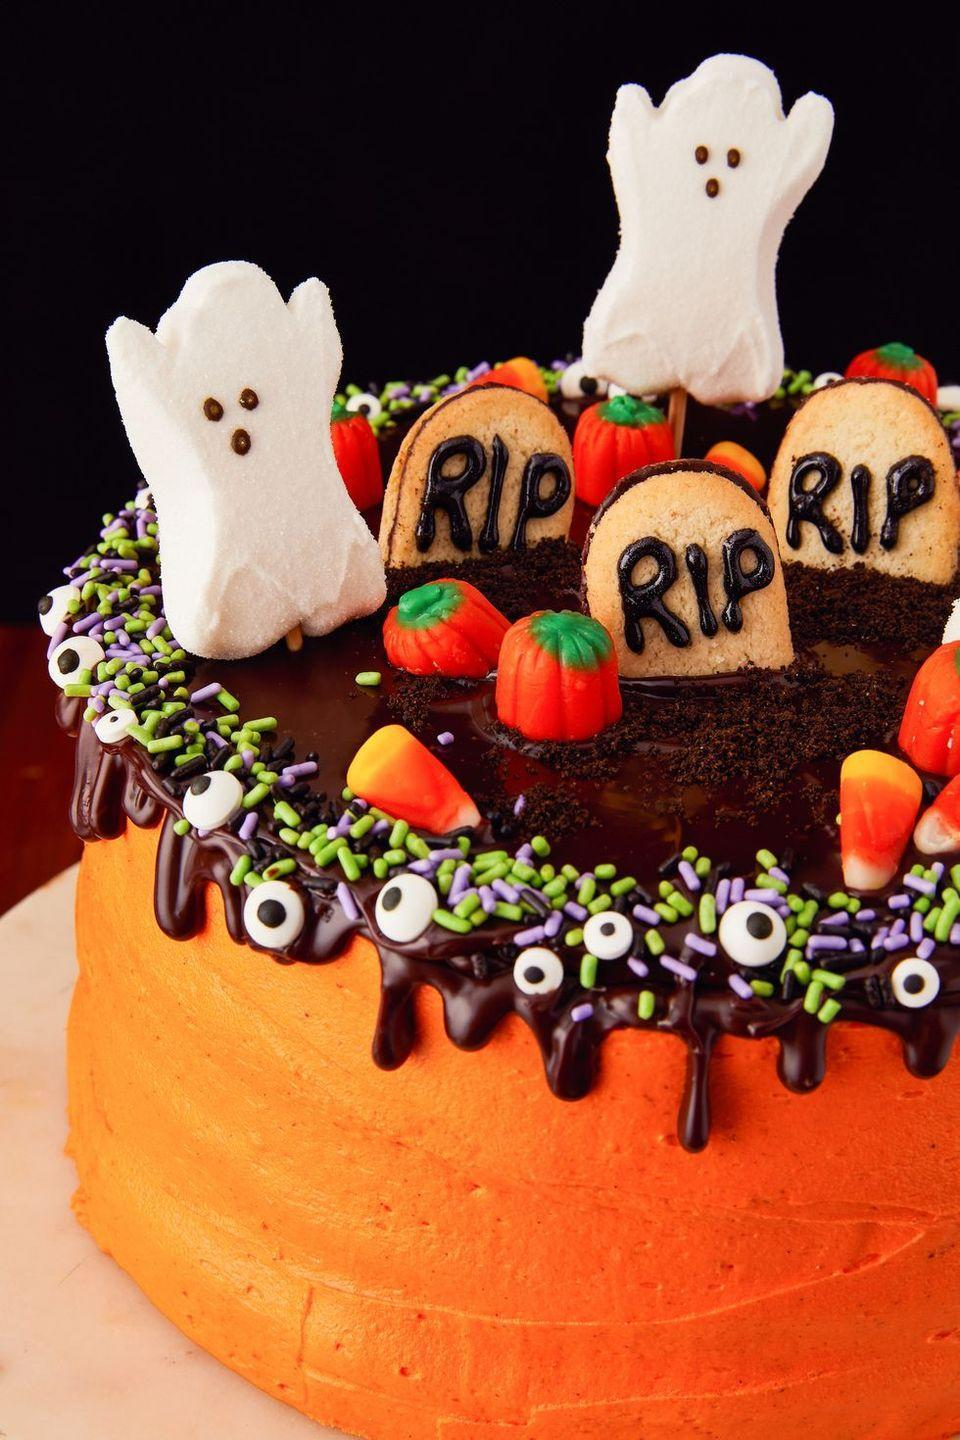 """<p>A cake can make anything better, especially a party. This cake will look amazing as the centerpiece of your dessert table. </p><p><strong><em>Get the recipe at <a href=""""https://www.delish.com/cooking/recipe-ideas/a23712647/halloween-layer-cake-recipe/"""" rel=""""nofollow noopener"""" target=""""_blank"""" data-ylk=""""slk:Delish"""" class=""""link rapid-noclick-resp"""">Delish</a>. </em></strong></p>"""